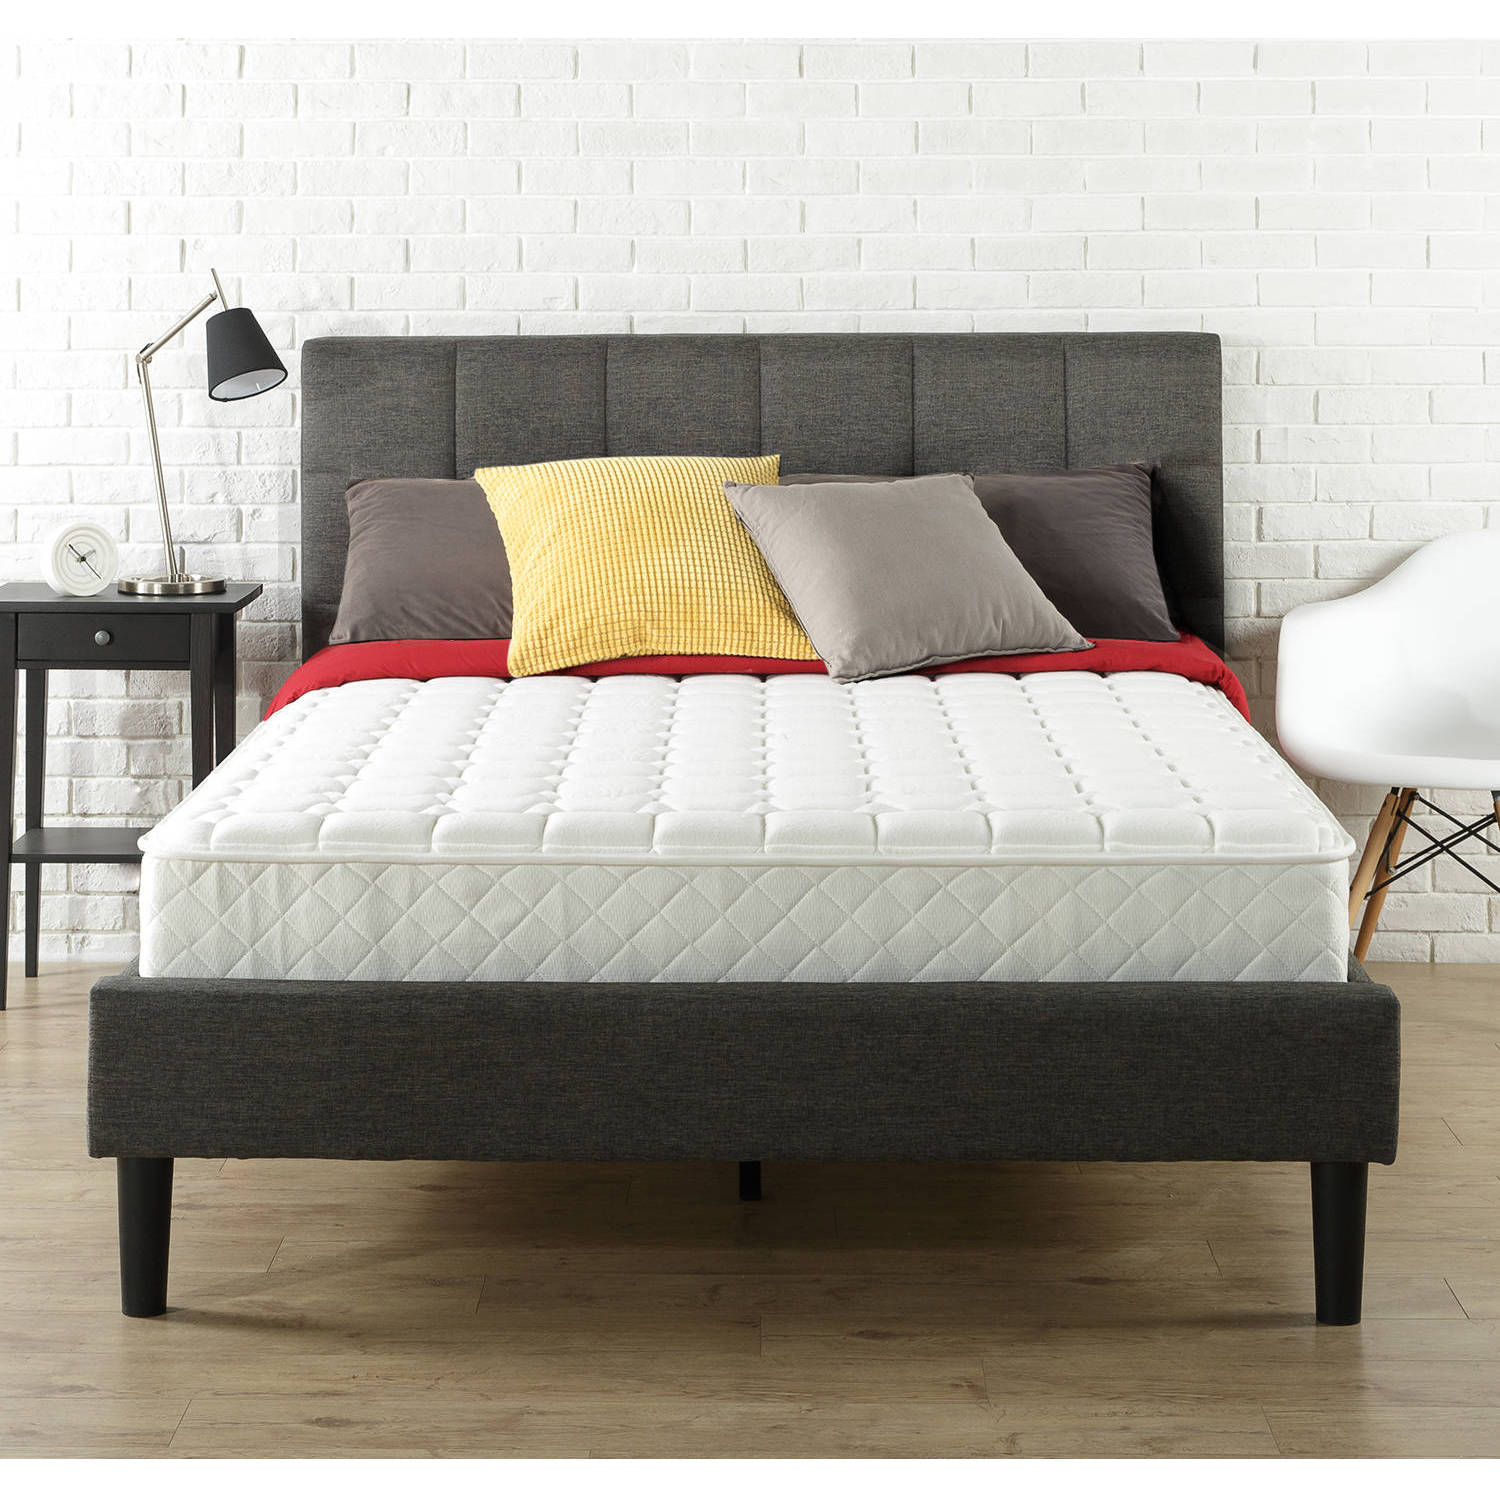 How Big Is A Queen Size Bed Uk Details About Queen Size 8 Mattress In A Box Tight Top Bed Mattress W Individual Spring Coil